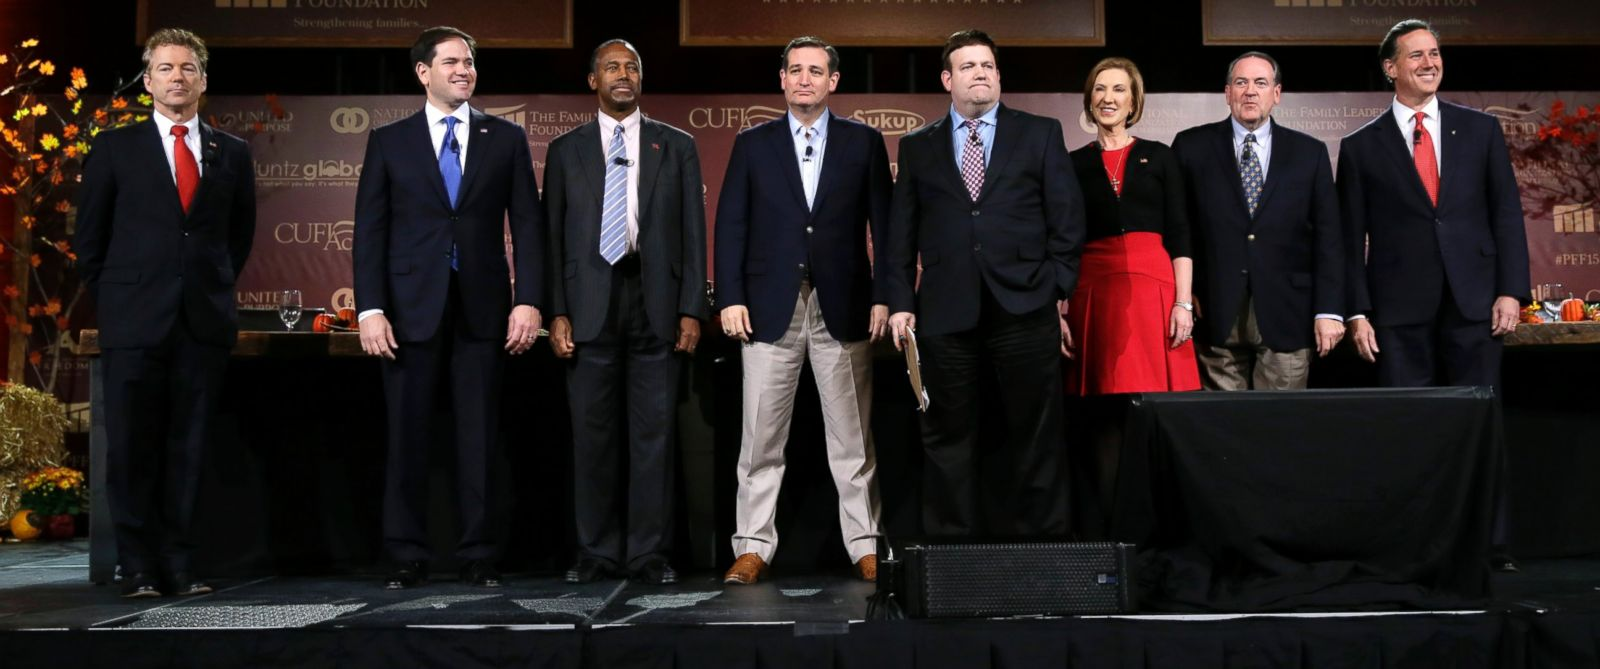 PHOTO: Republican presidential candidates, from left, Rand Paul, Marco Rubio, Ben Carson, Ted Cruz, moderator Frank Luntz, Carly Fiorina, Mike Huckabee and Rick Santorum at the Presidential Family Forum, Nov. 20, 2015, in Des Moines, Iowa.